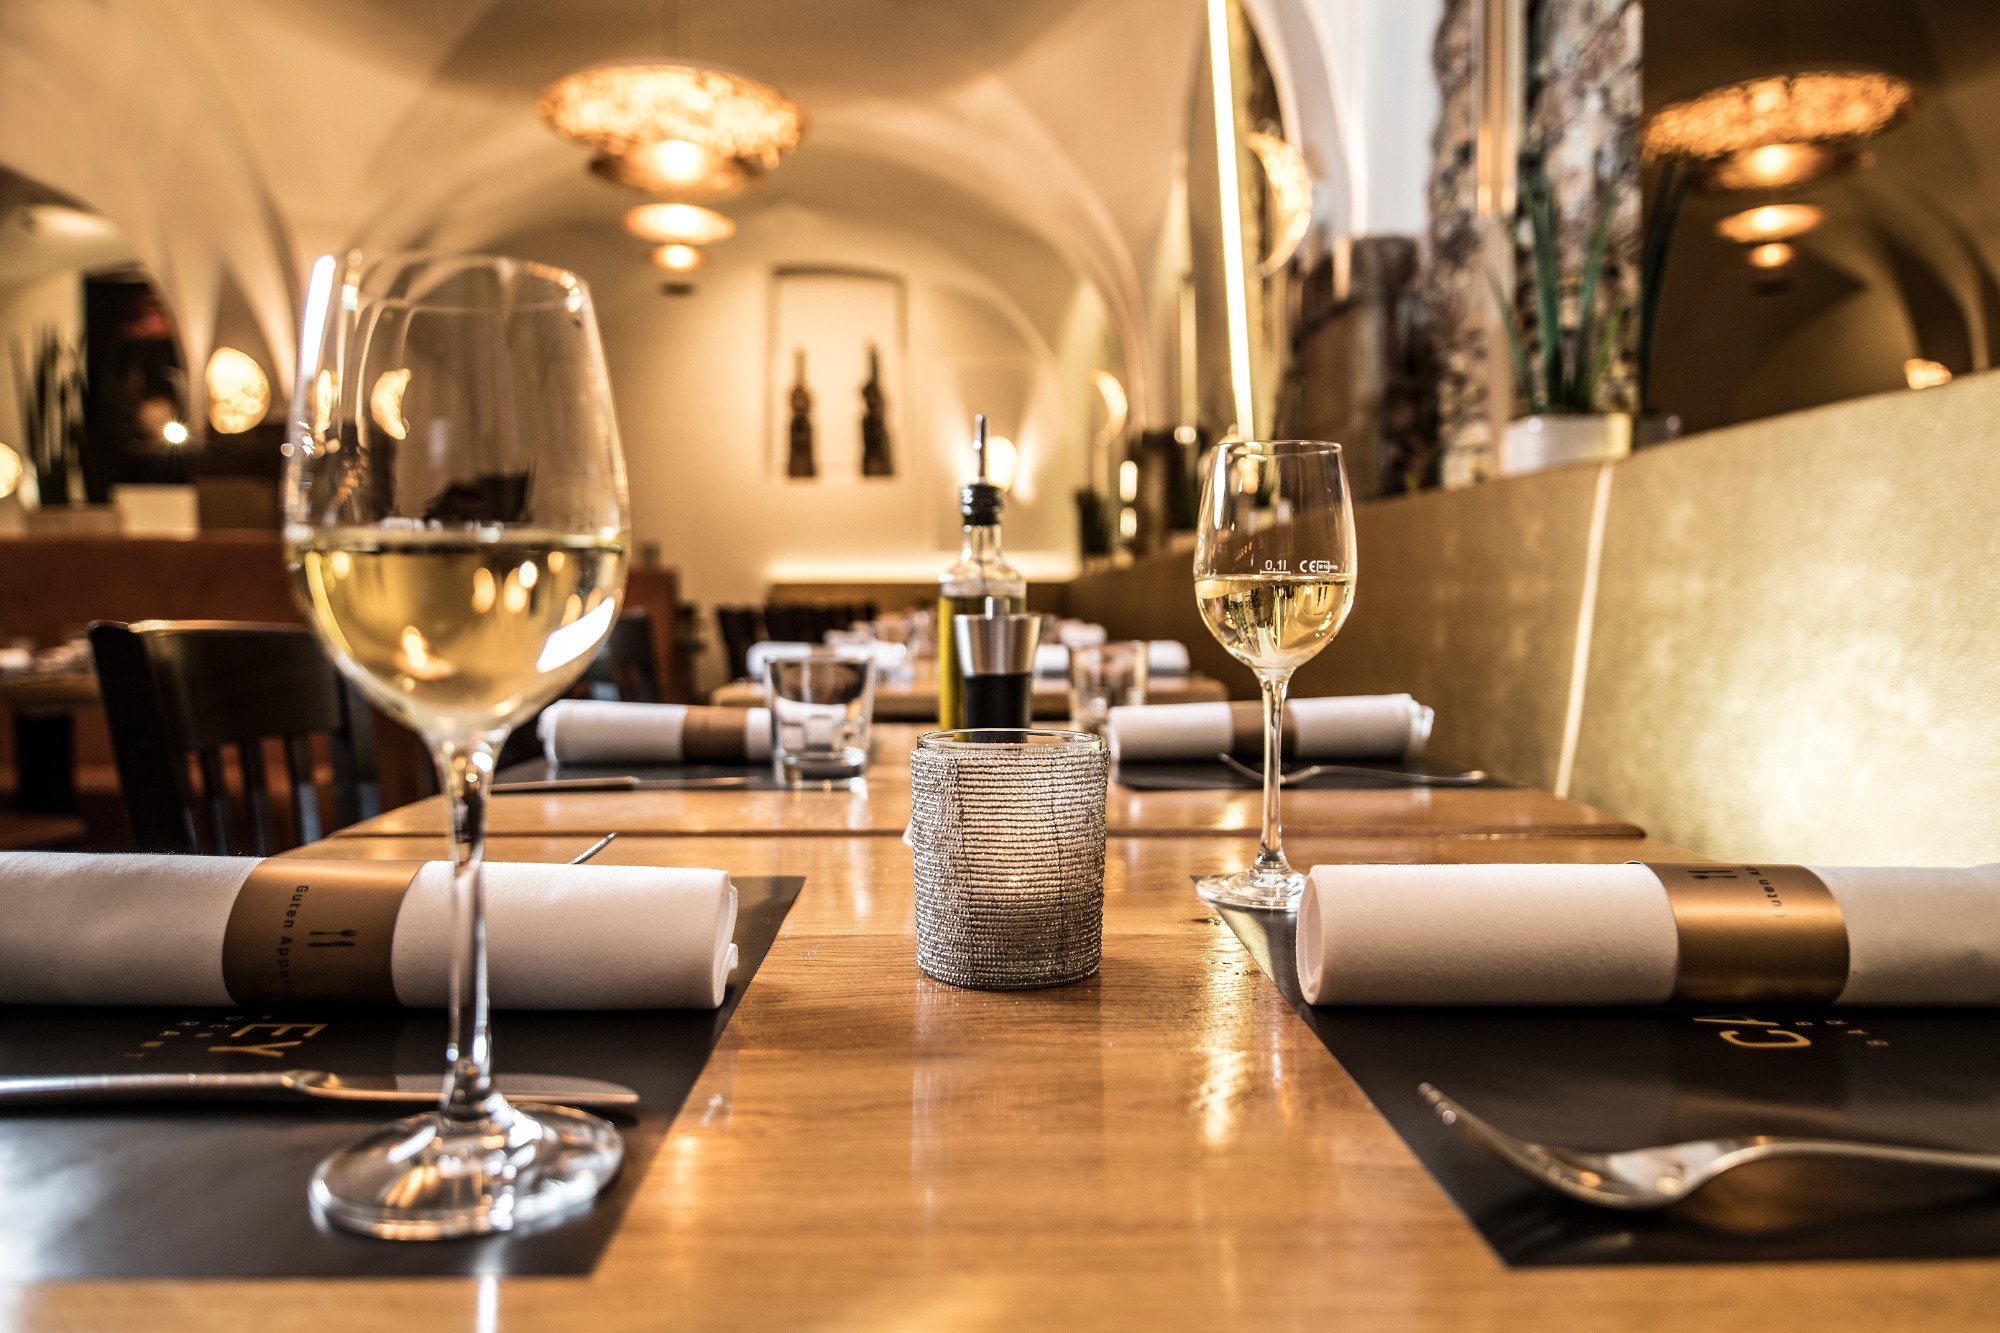 Where to eat Bar food in Schoemberg: The Best Restaurants and Bars